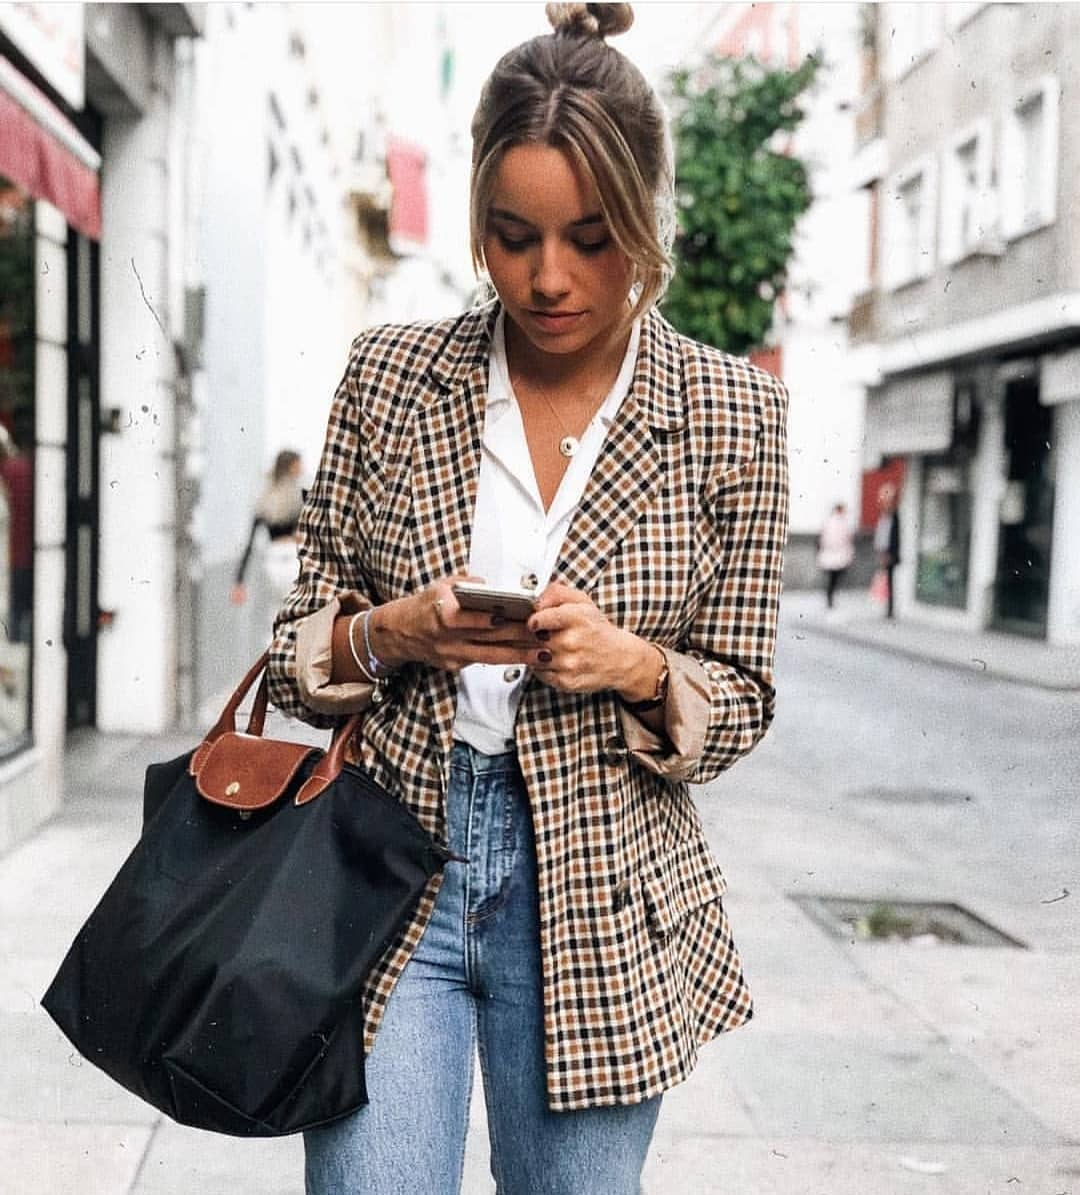 Simple Street Style Look: Plaid Blazer With White Shirt And Blue Jeans 2020